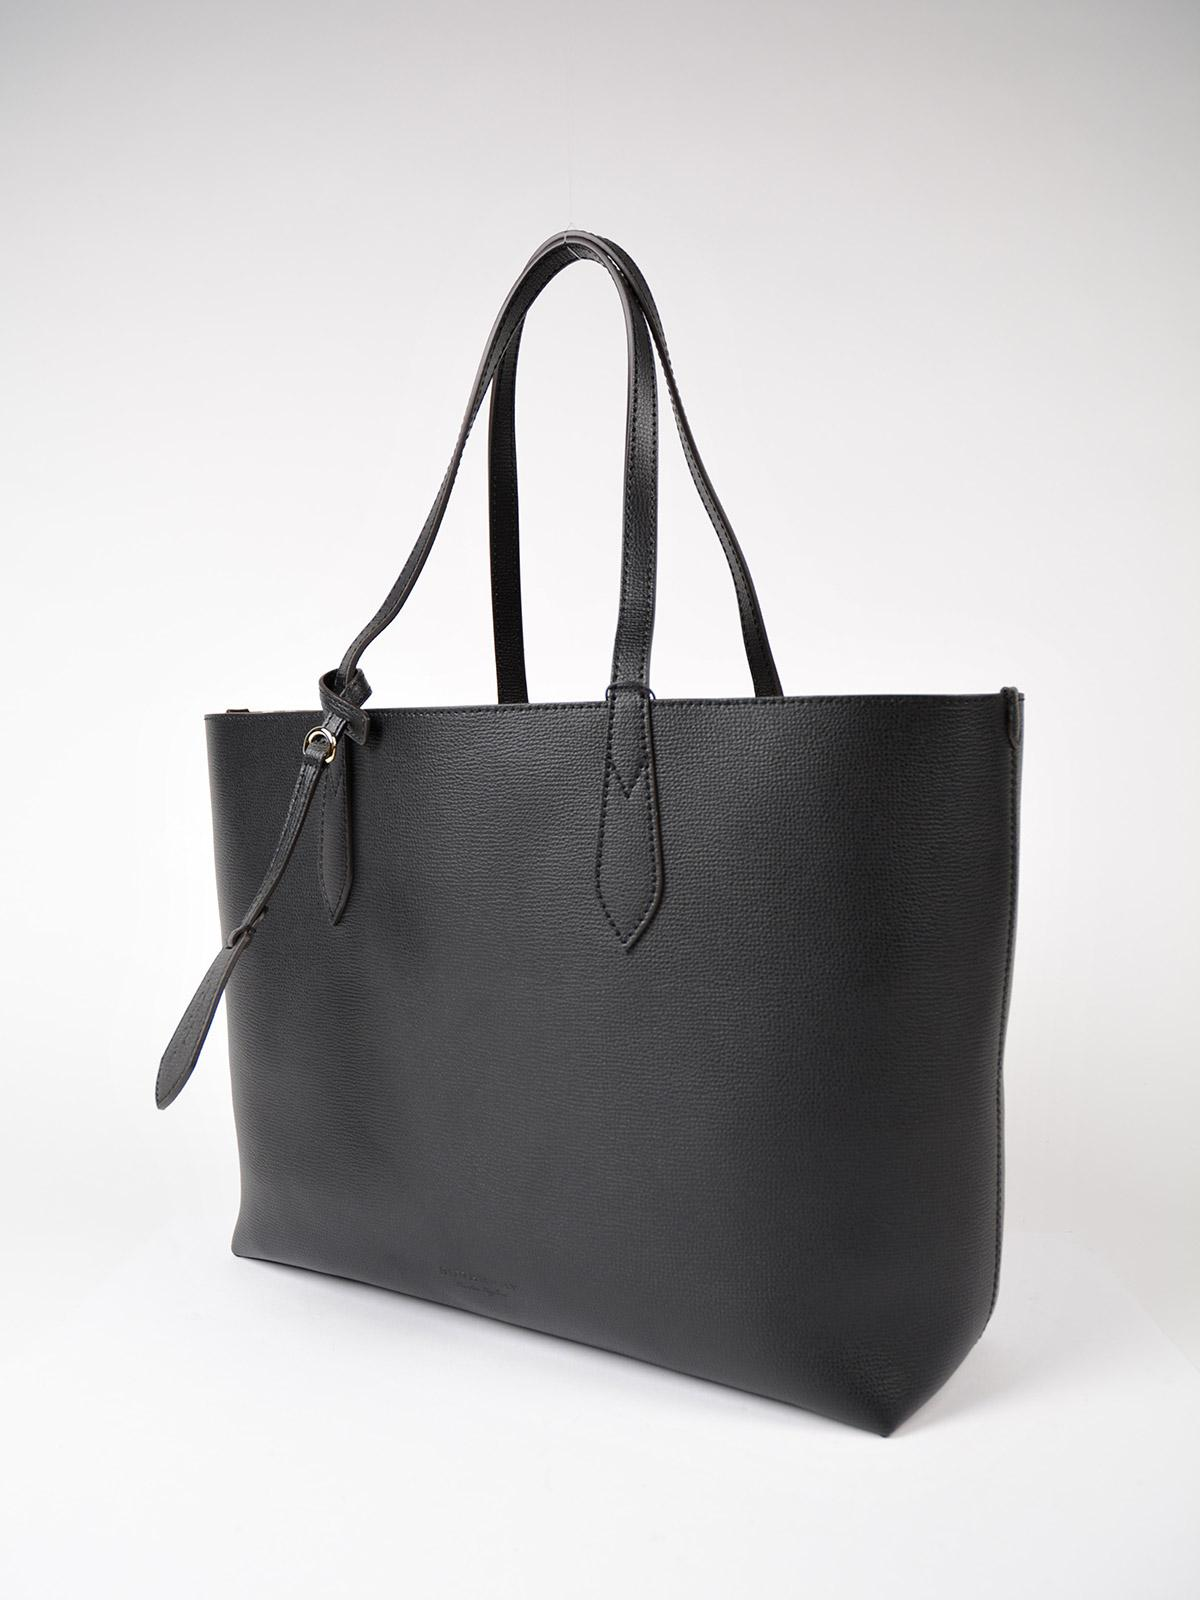 Burberry Leather Md Reverse Tote in Black